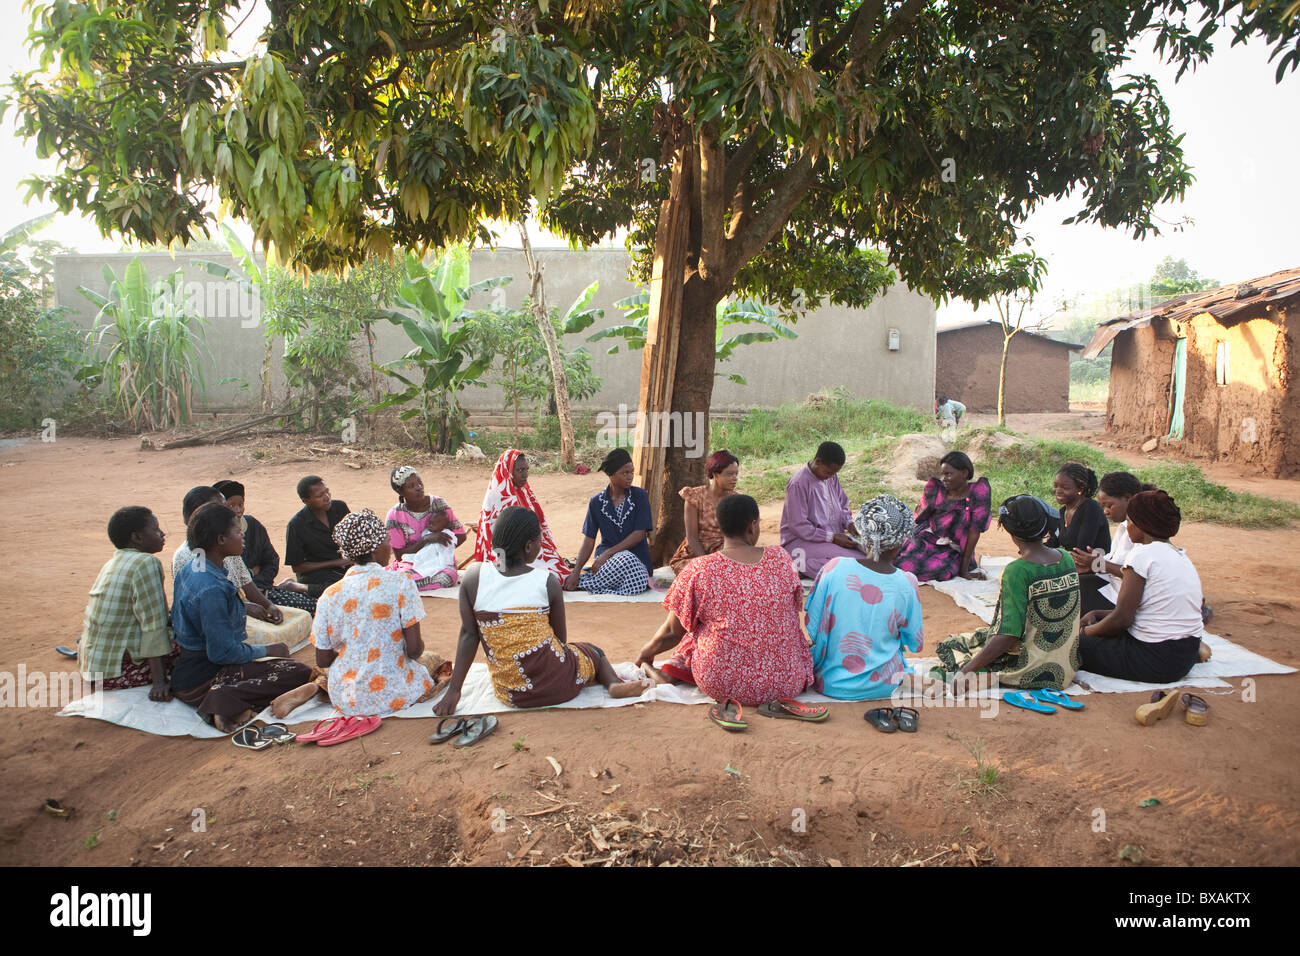 Women attend a community meeting in Nkono Village, a village outside Iganga town, Eastern Uganda, East Africa. - Stock Image